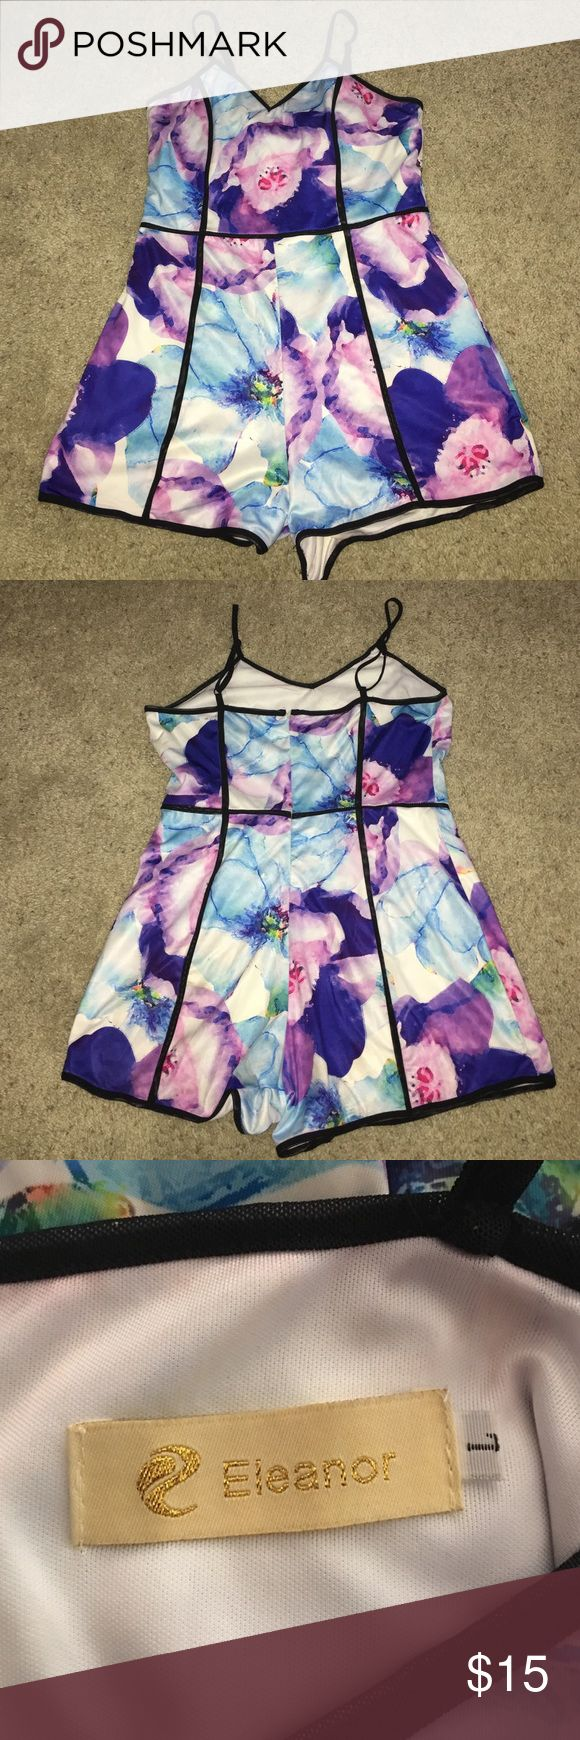 Women's Floral Romper Women's Floral Romper. Size L. Only been worn once. Zip up in the back with adjustable sleeves. Eleanor Pants Jumpsuits & Rompers